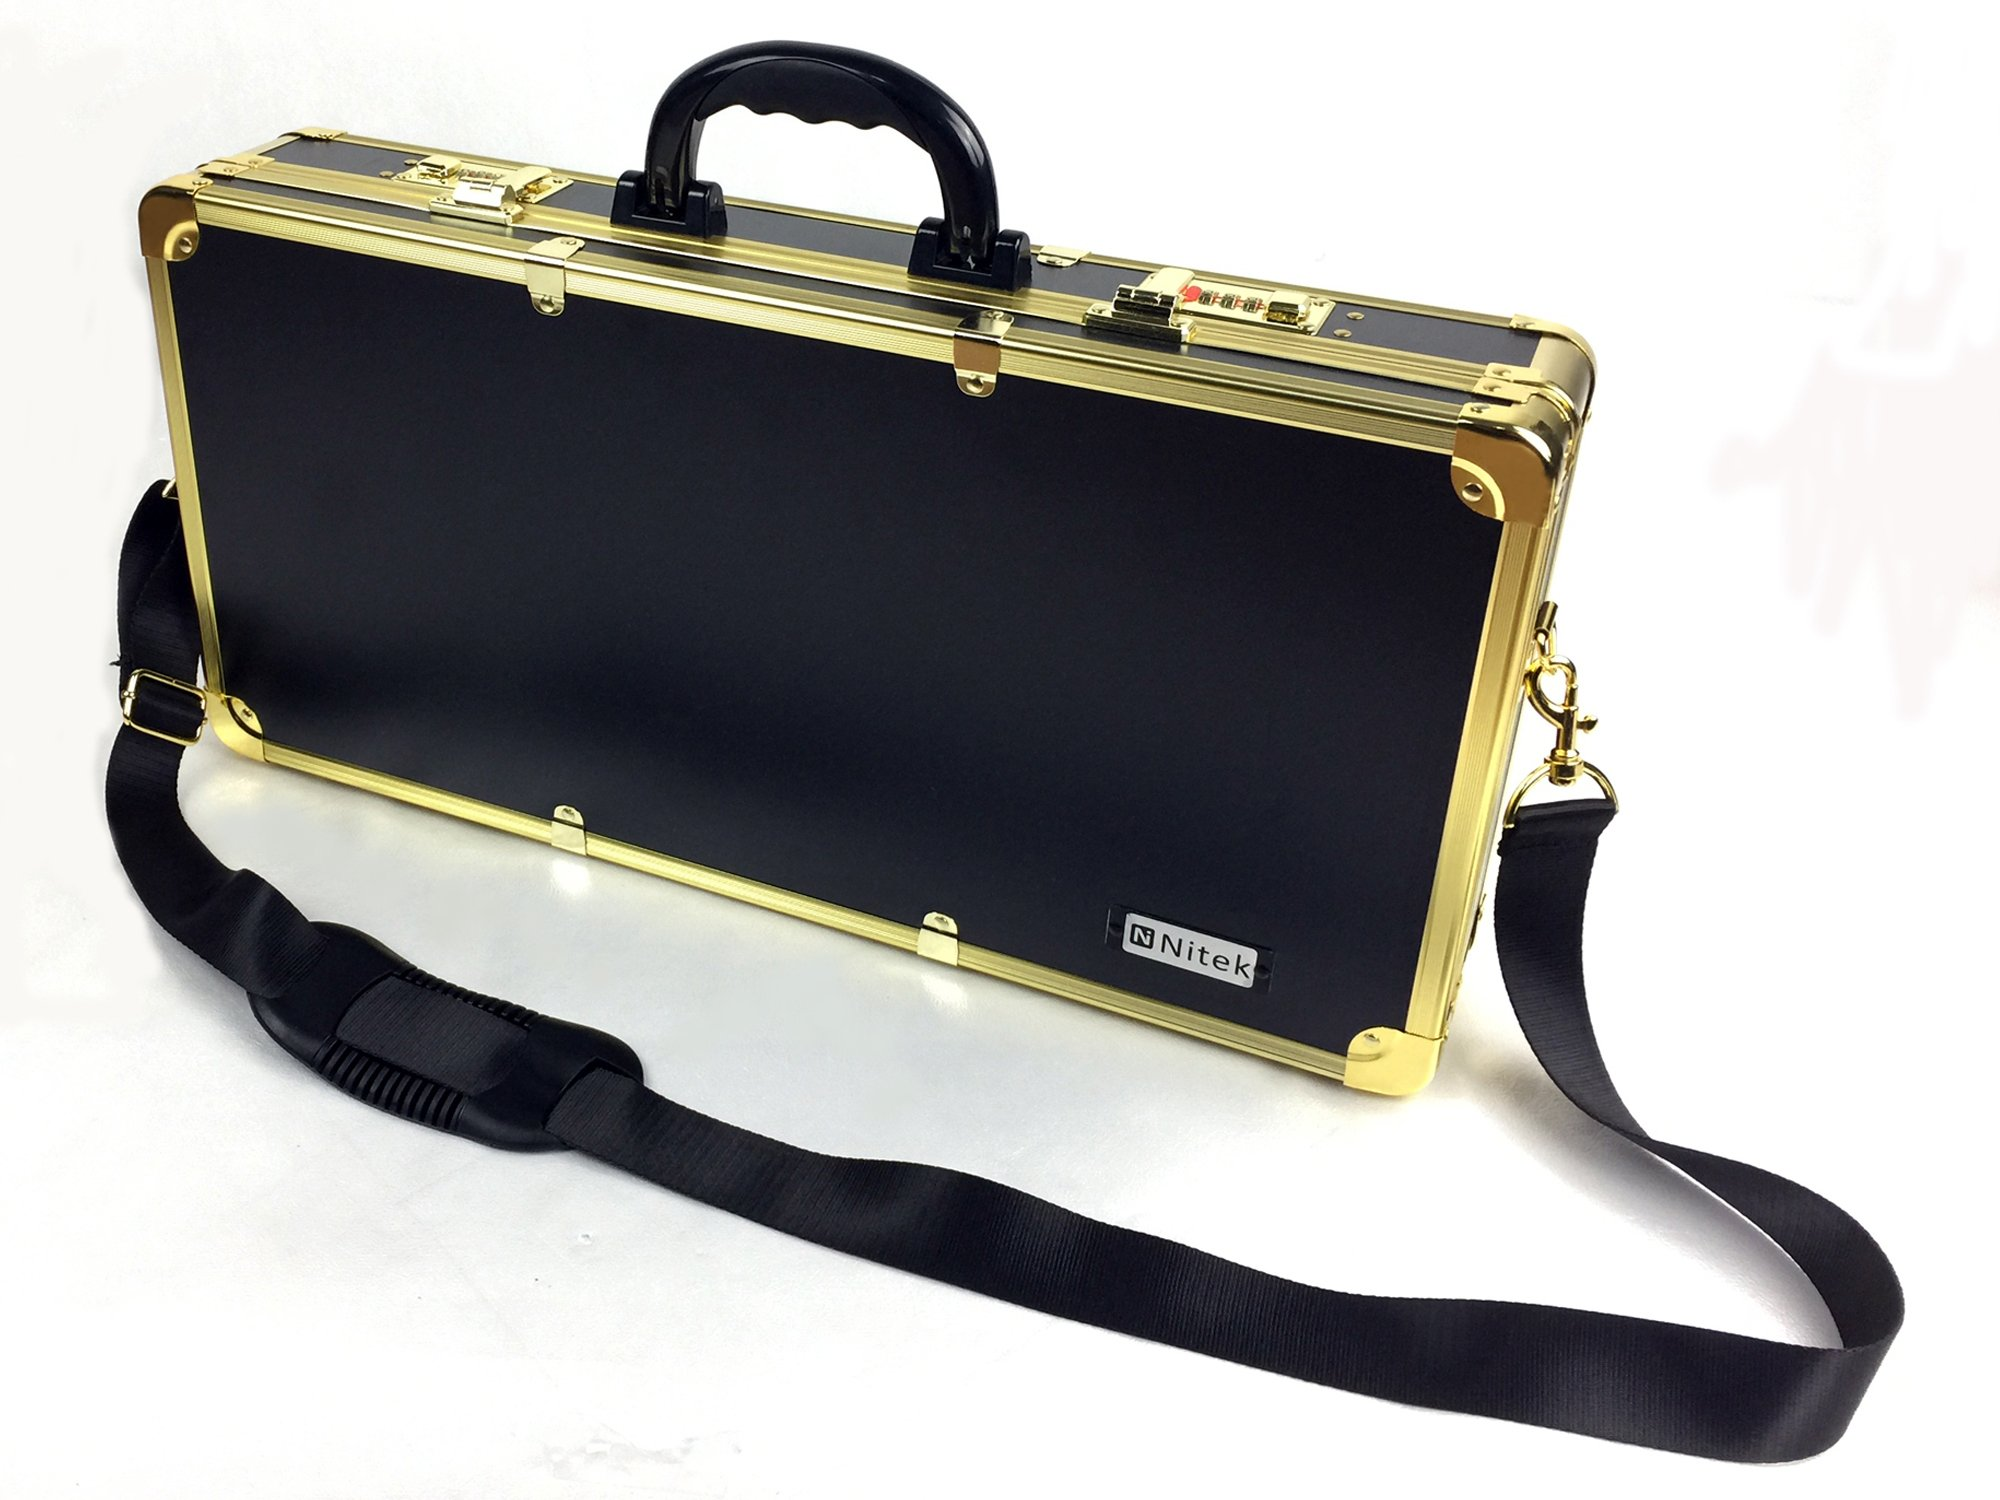 Barber box L22 xW3.9 xH10.6 inches golden color